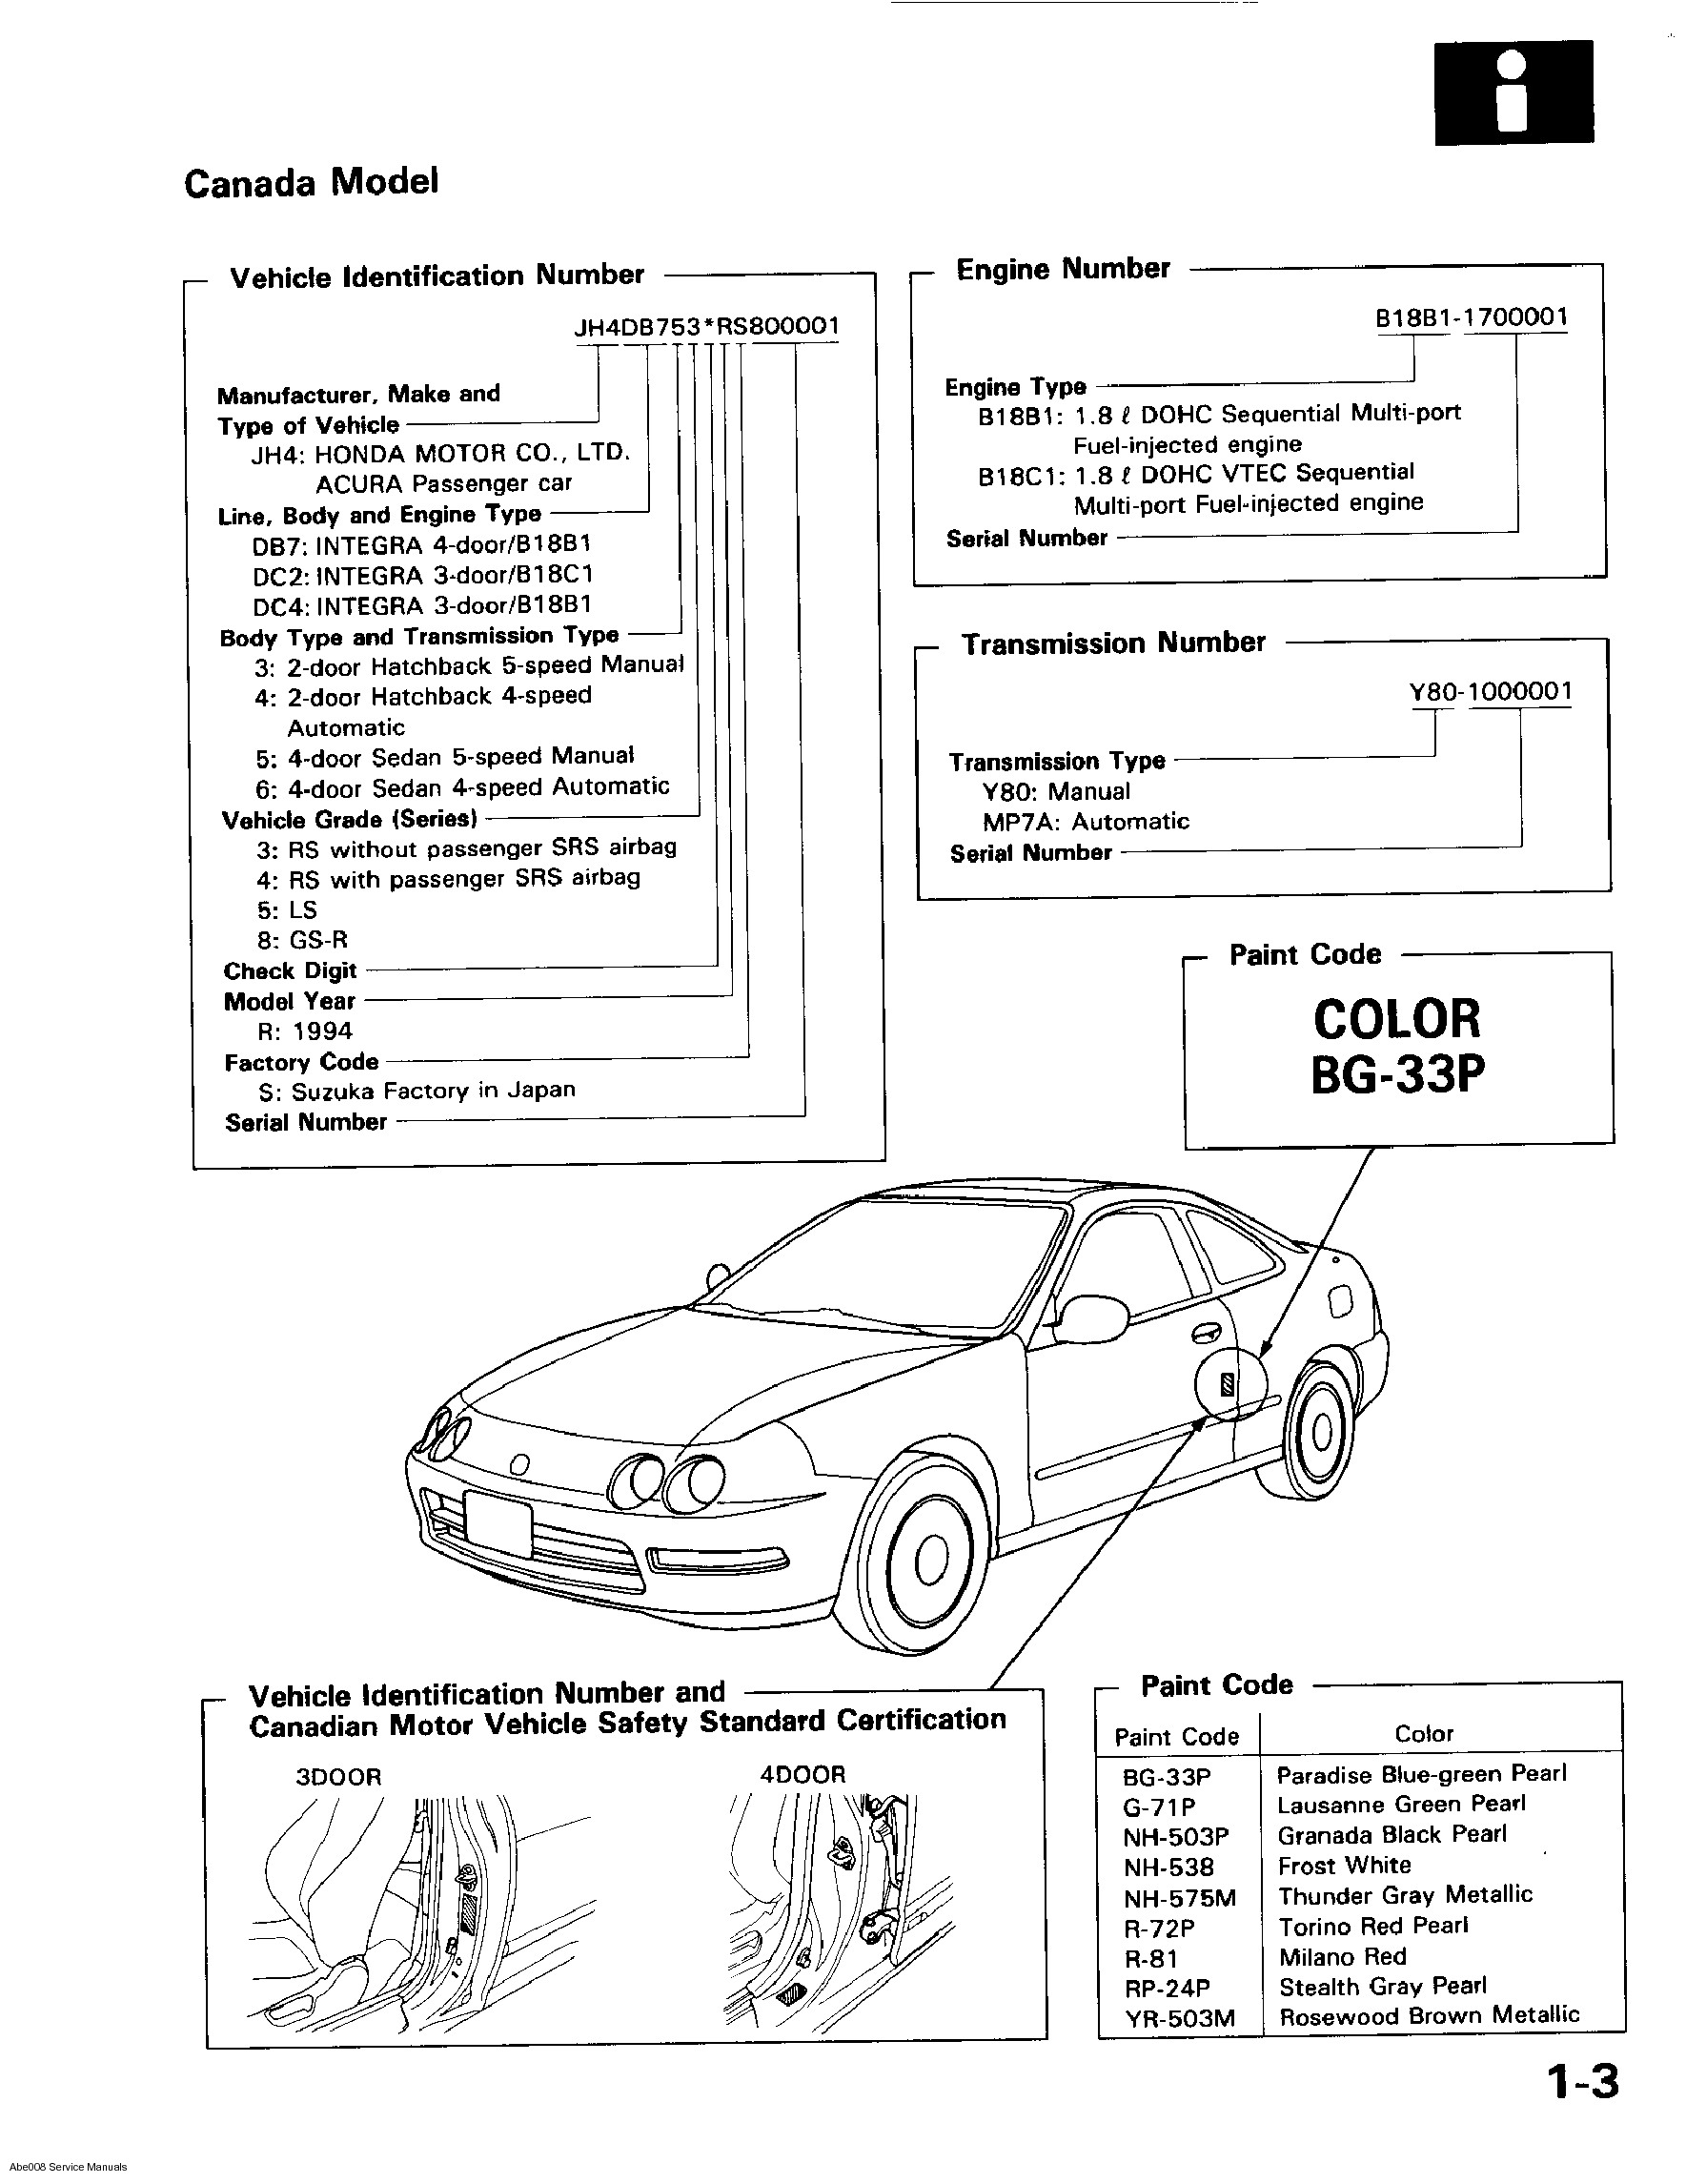 Honda Del Sol Service Manual 1992 1993 1994 1995 1996 1997 1998 Download on 1997 honda del sol vtec